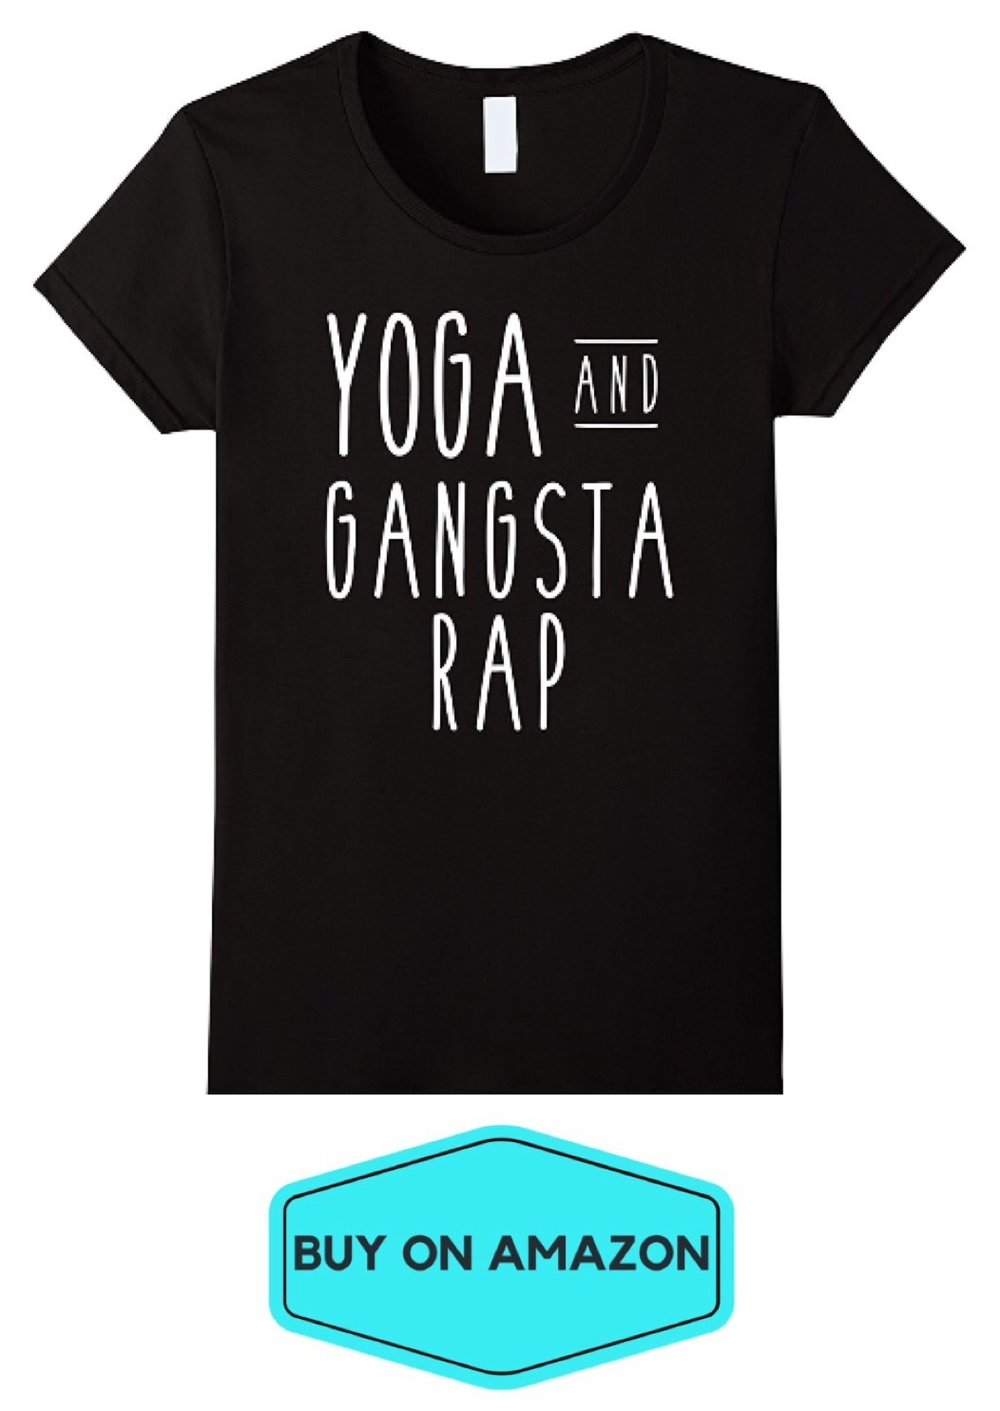 Yoga and Gangsta Rap Tee